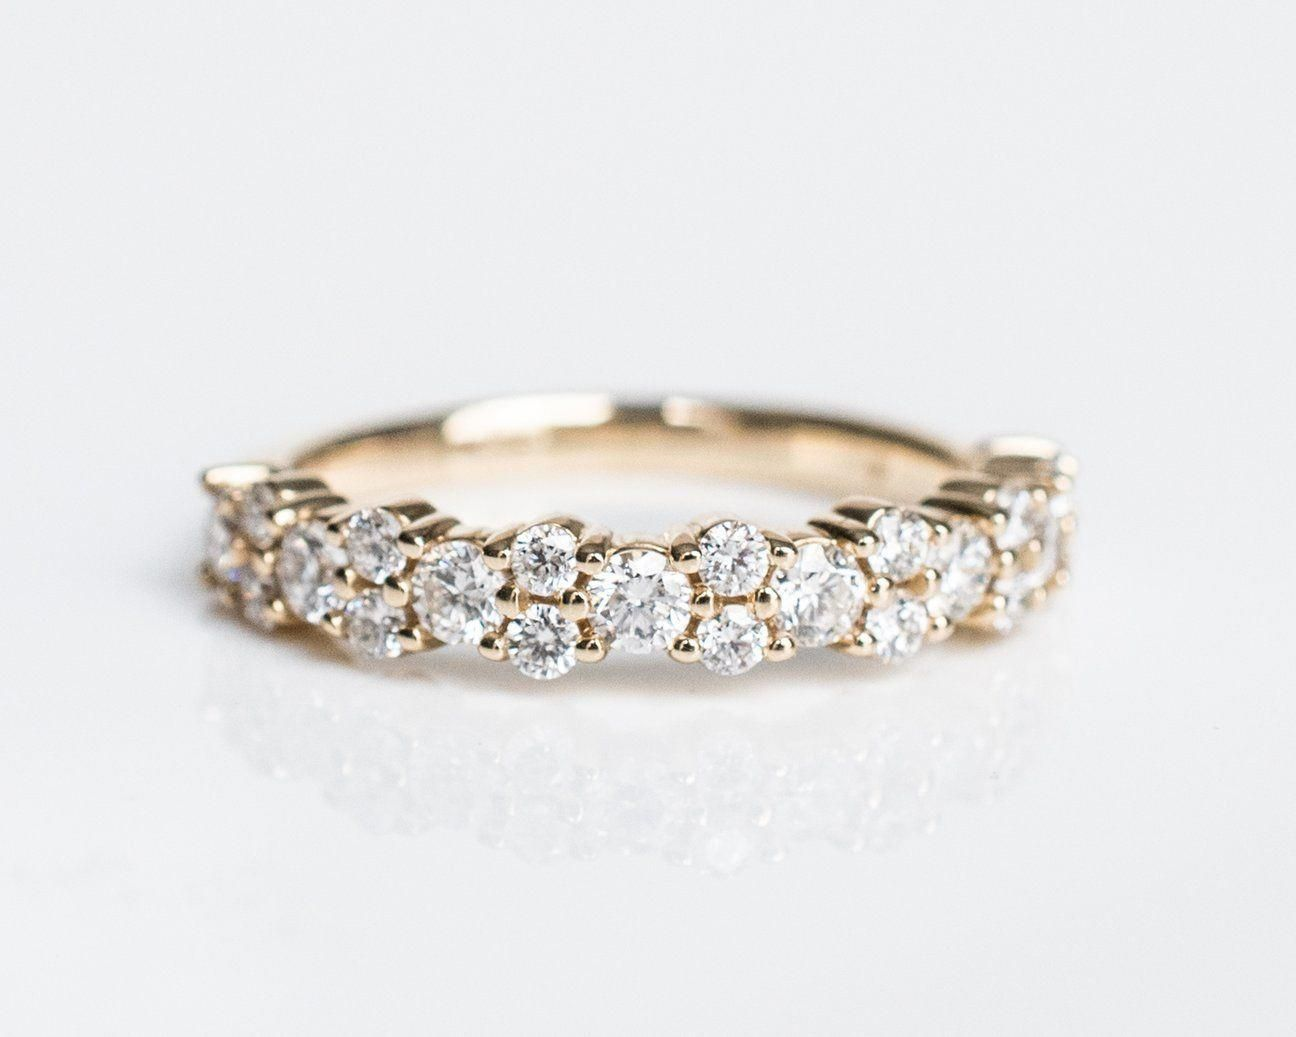 A Part That Is Sure To Captivate It S Target Audience The Diamonds Garland Engagement Ring In 2020 Diamond Wedding Bands Gold Diamond Wedding Band Wedding Ring Bands